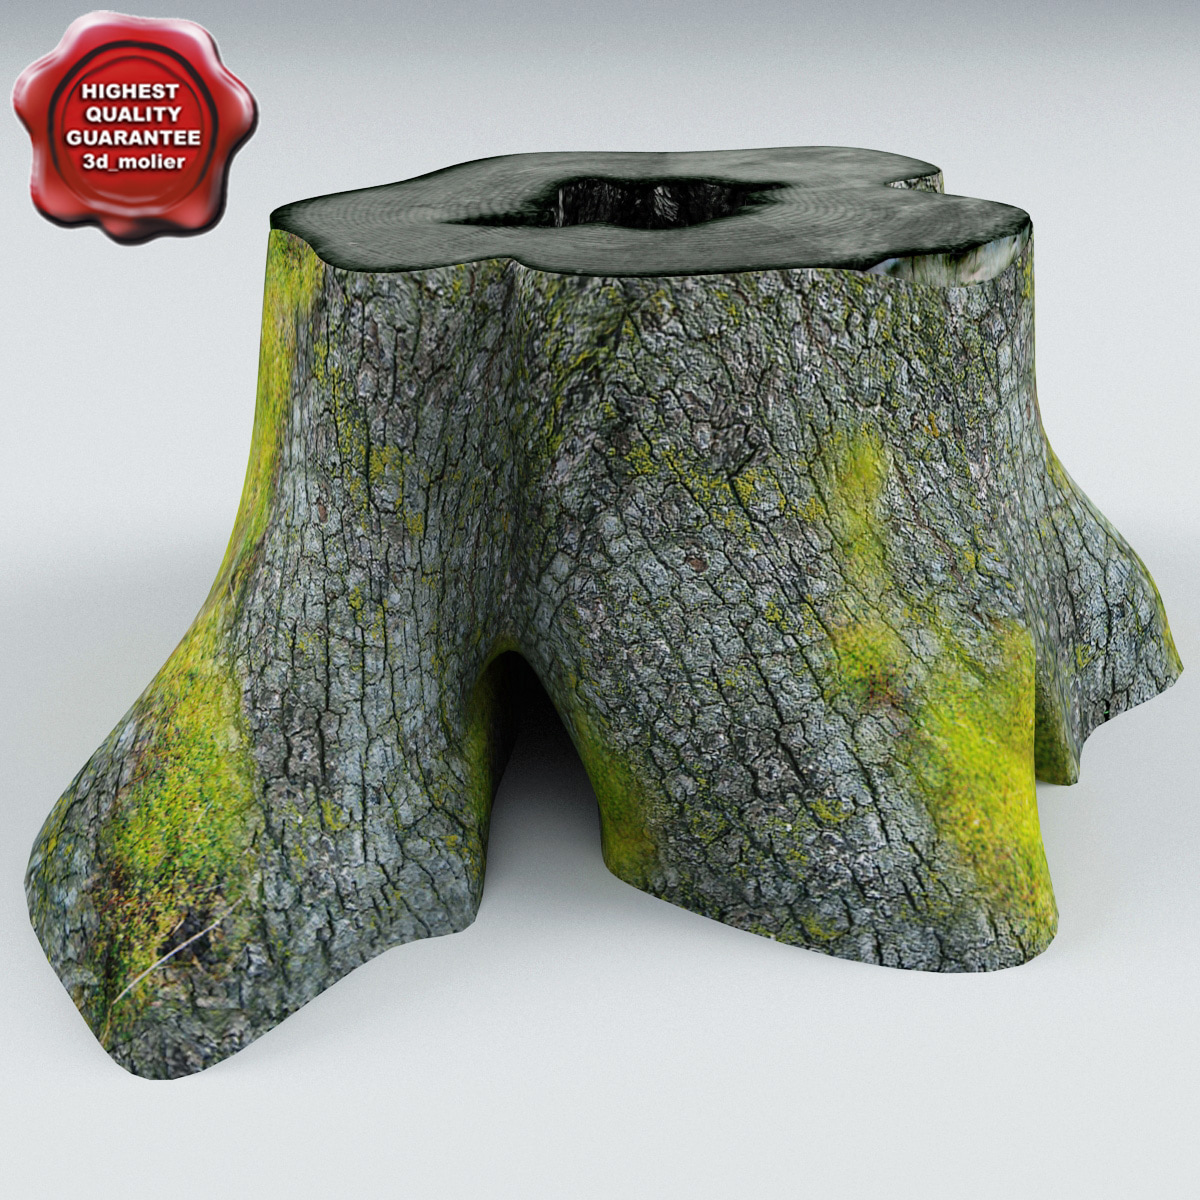 old stump v4 3d model